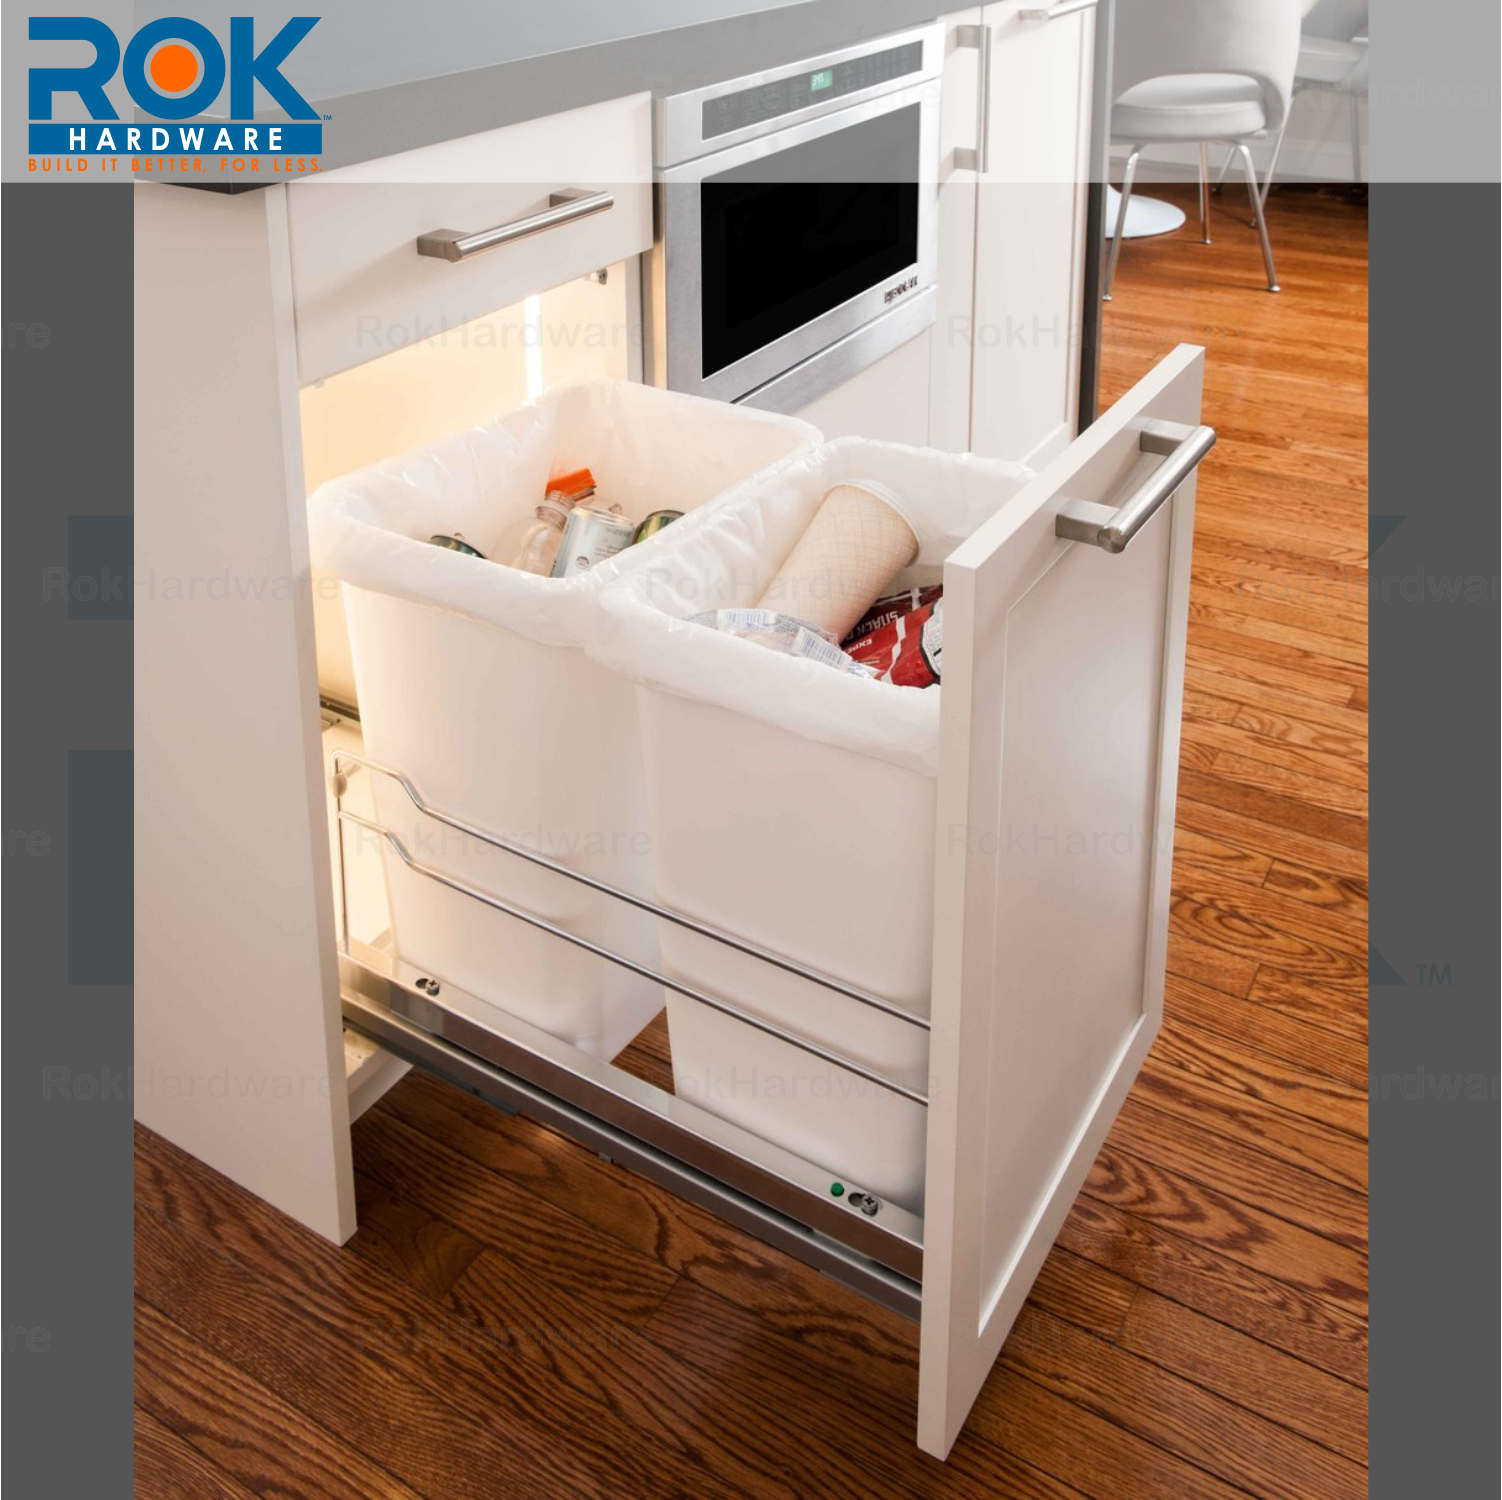 rok kitchen cabinet trash and recycling center for dual waste bins 2x 36 quart 600346745612 ebay. Black Bedroom Furniture Sets. Home Design Ideas